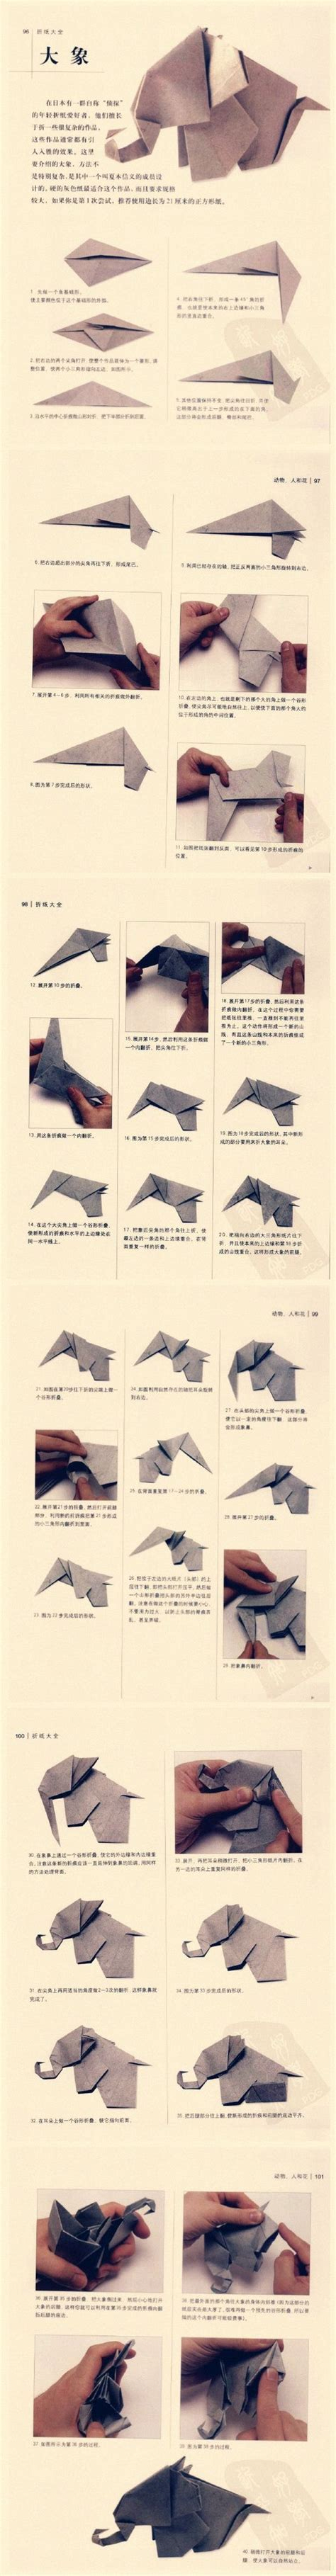 How To Make A Elephant Origami - origami elephant directions origami